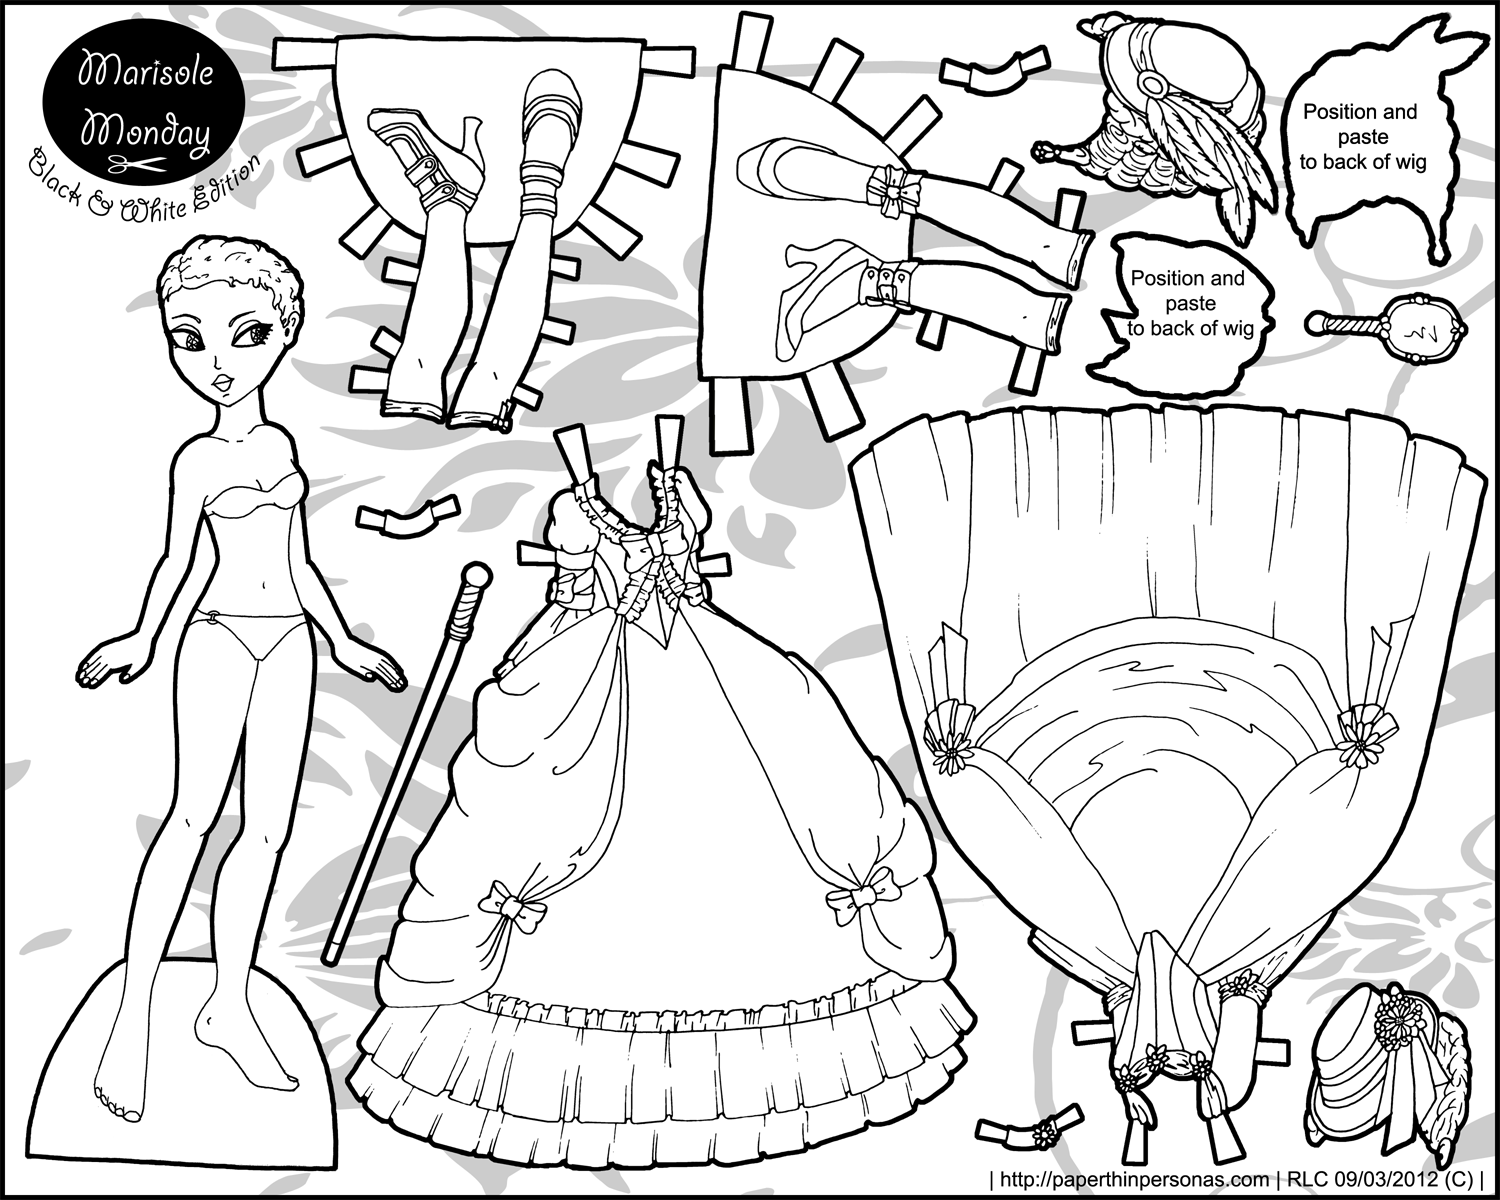 roccoco fantasy paper doll in black and white paper